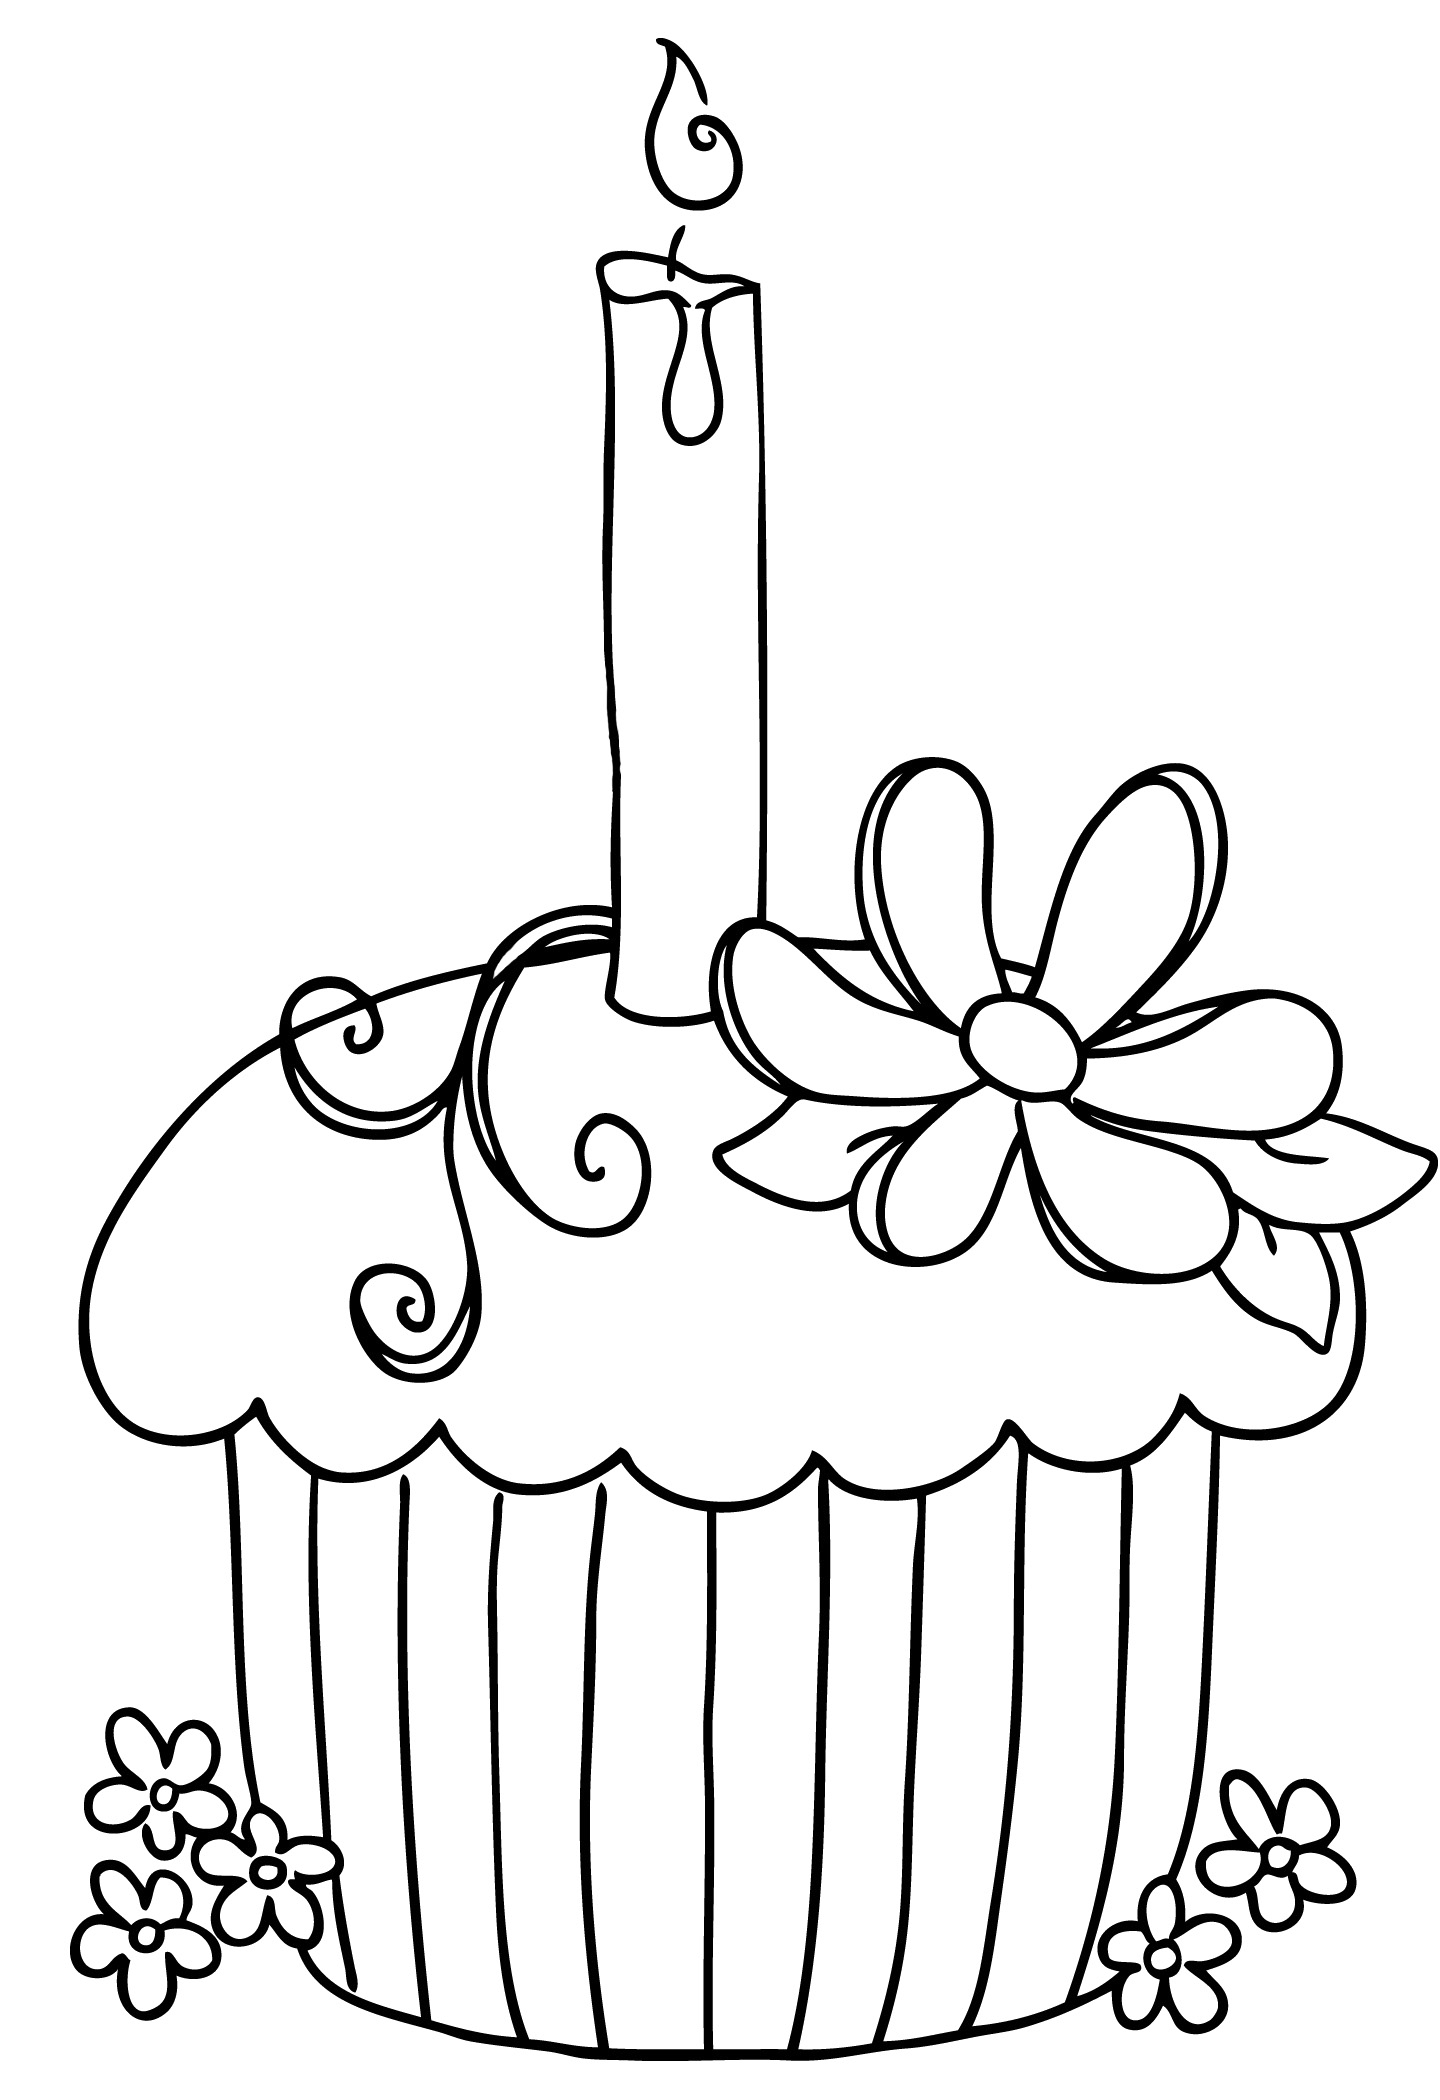 Birthday Candles Clipart Black And White